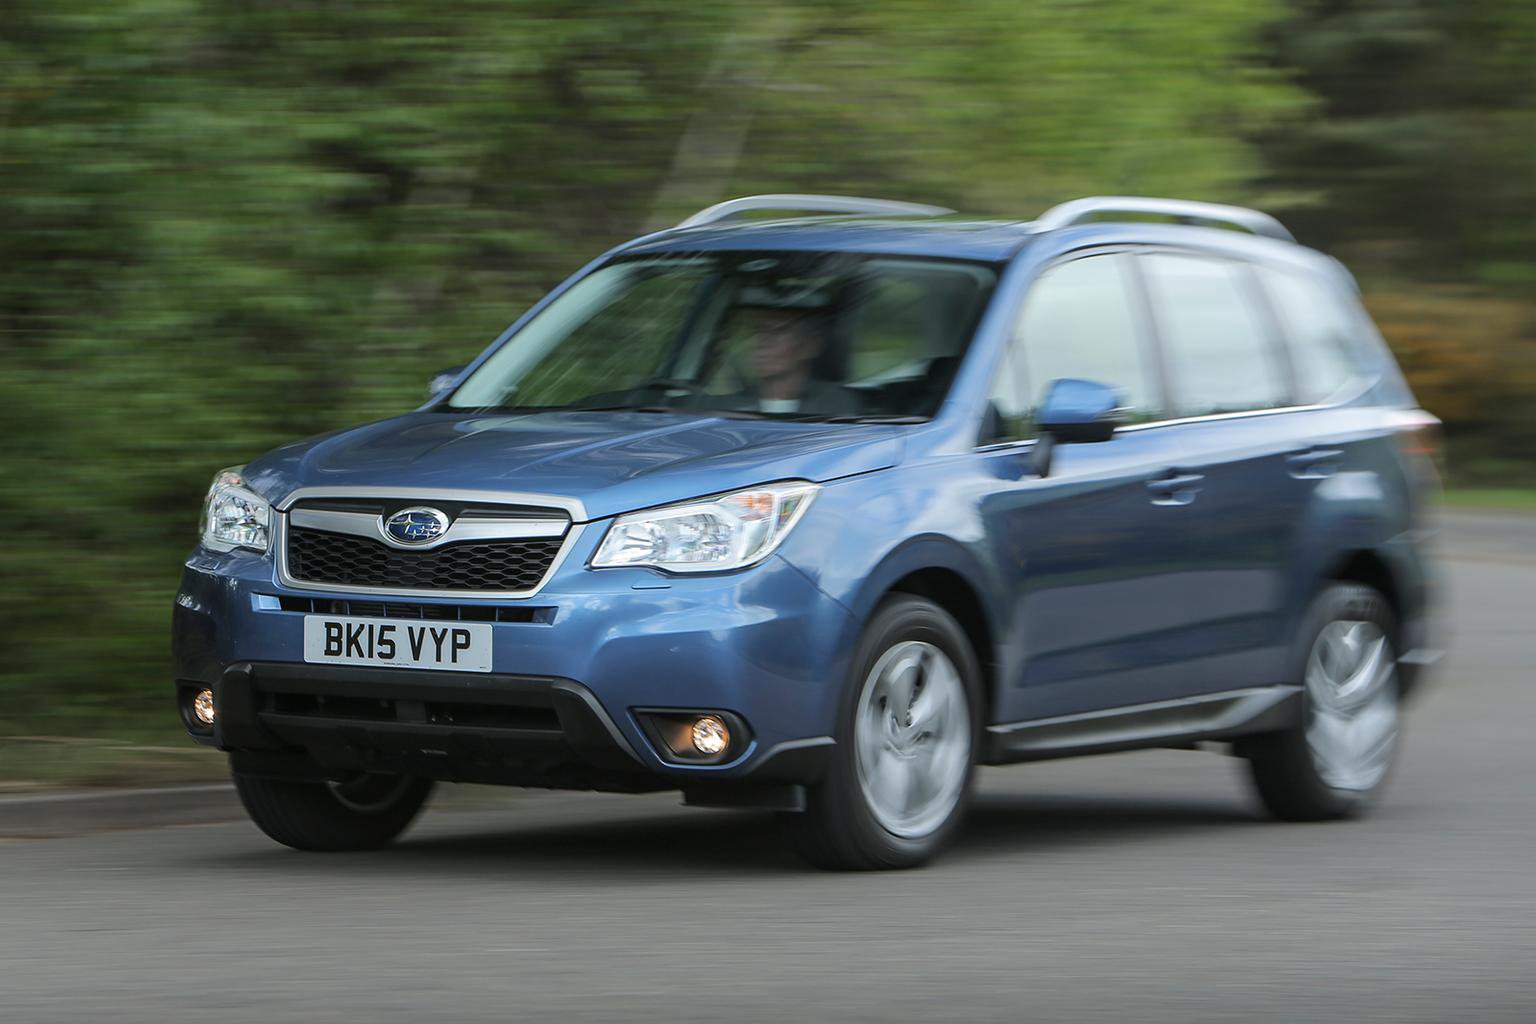 2015 Subaru Forester 2.0d XC Premium review